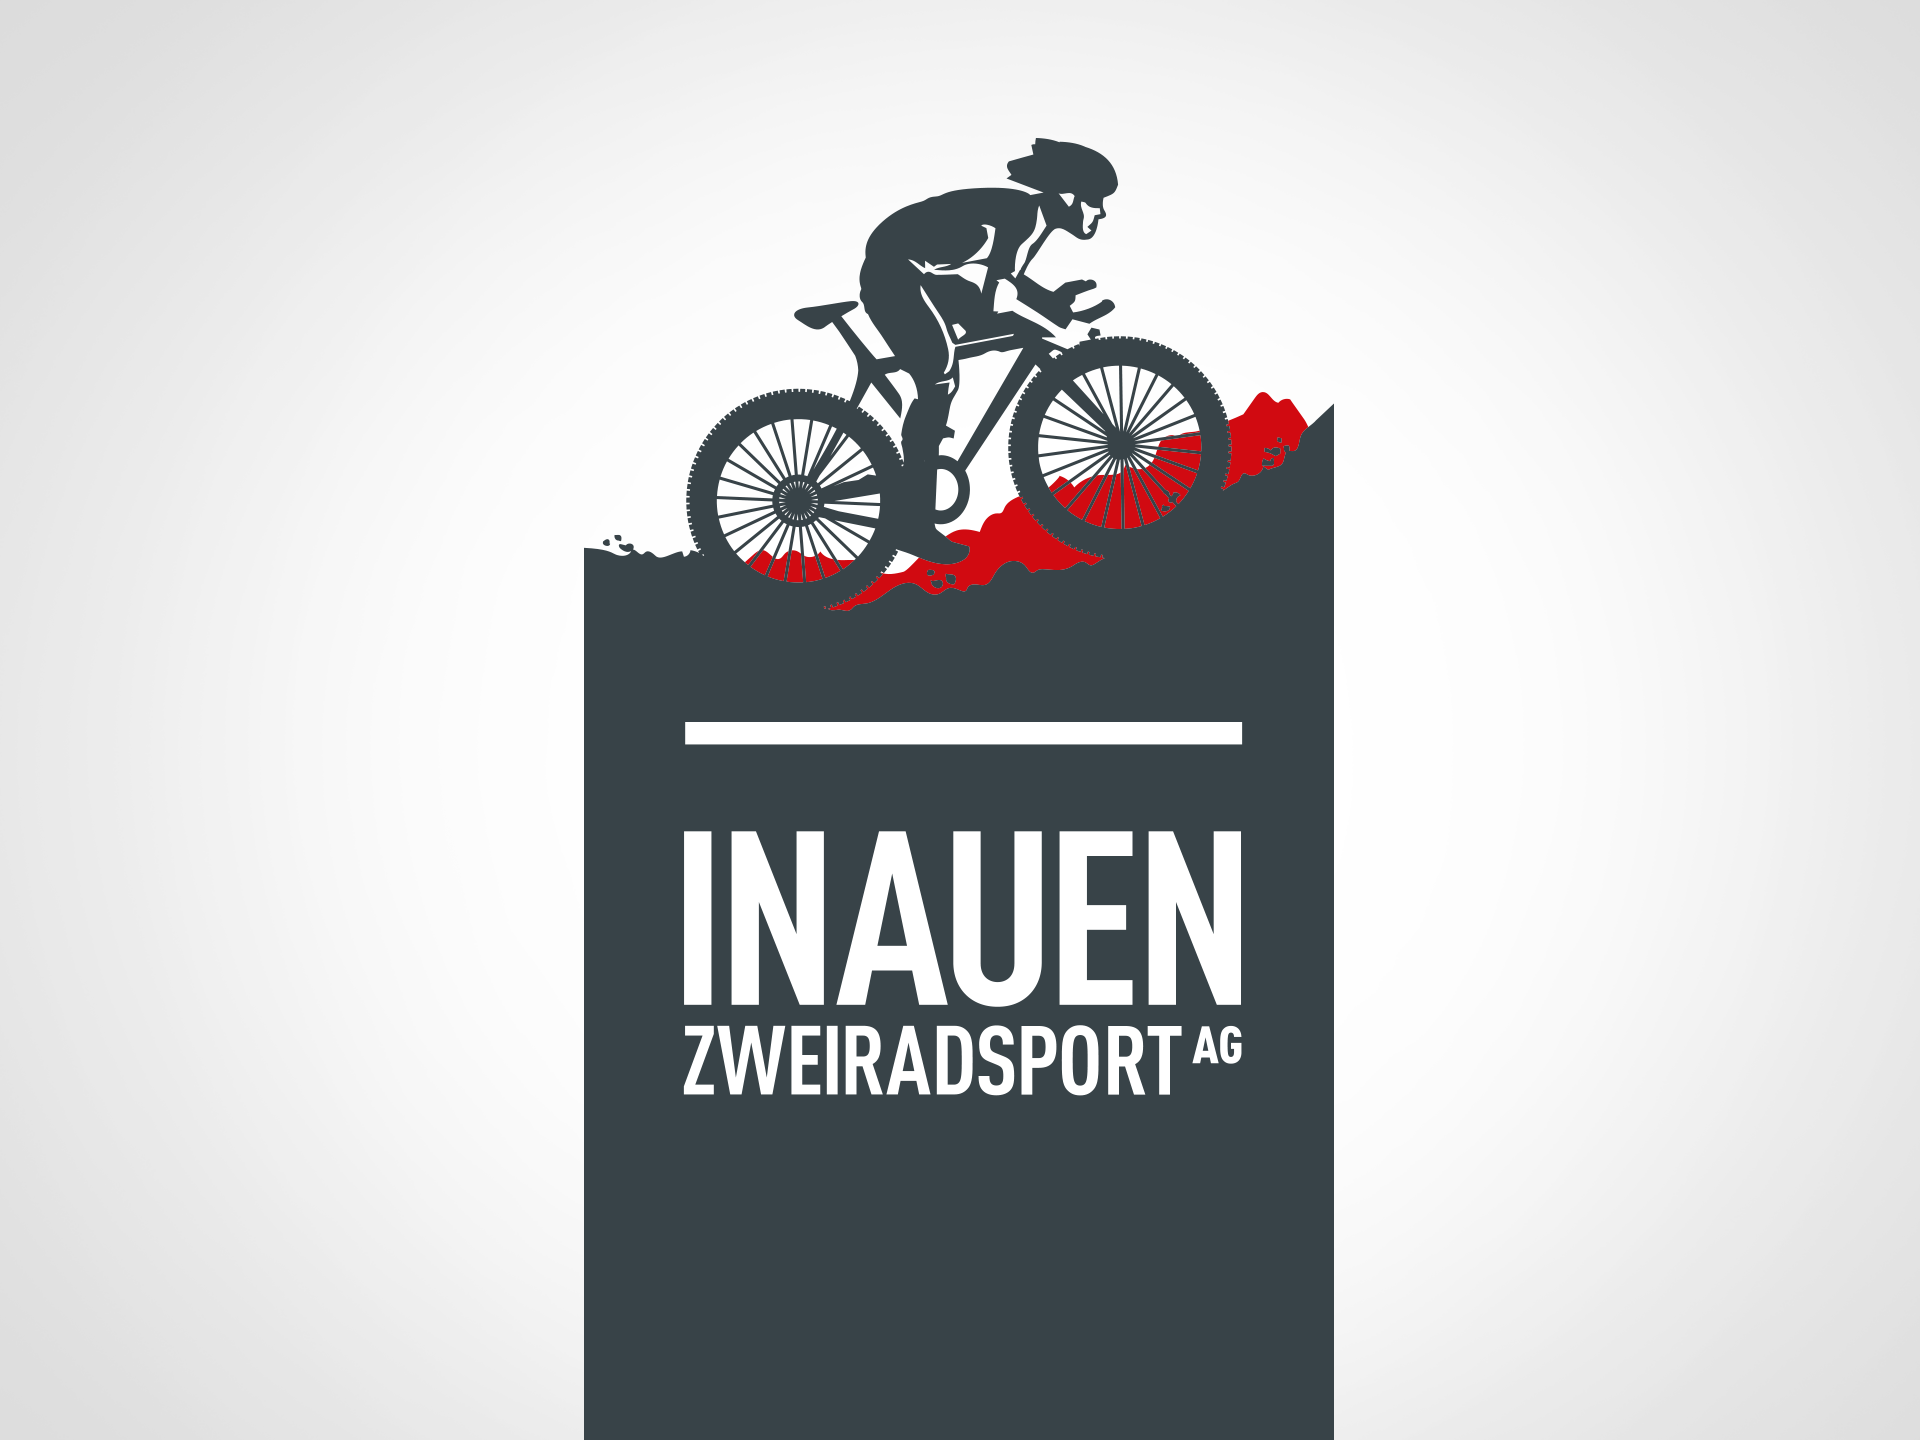 SM Graphic Design Illustration Logo Corporate Identity Design Inauen Zweiratsport Bikeshop Motorräder Velo Fahrrad